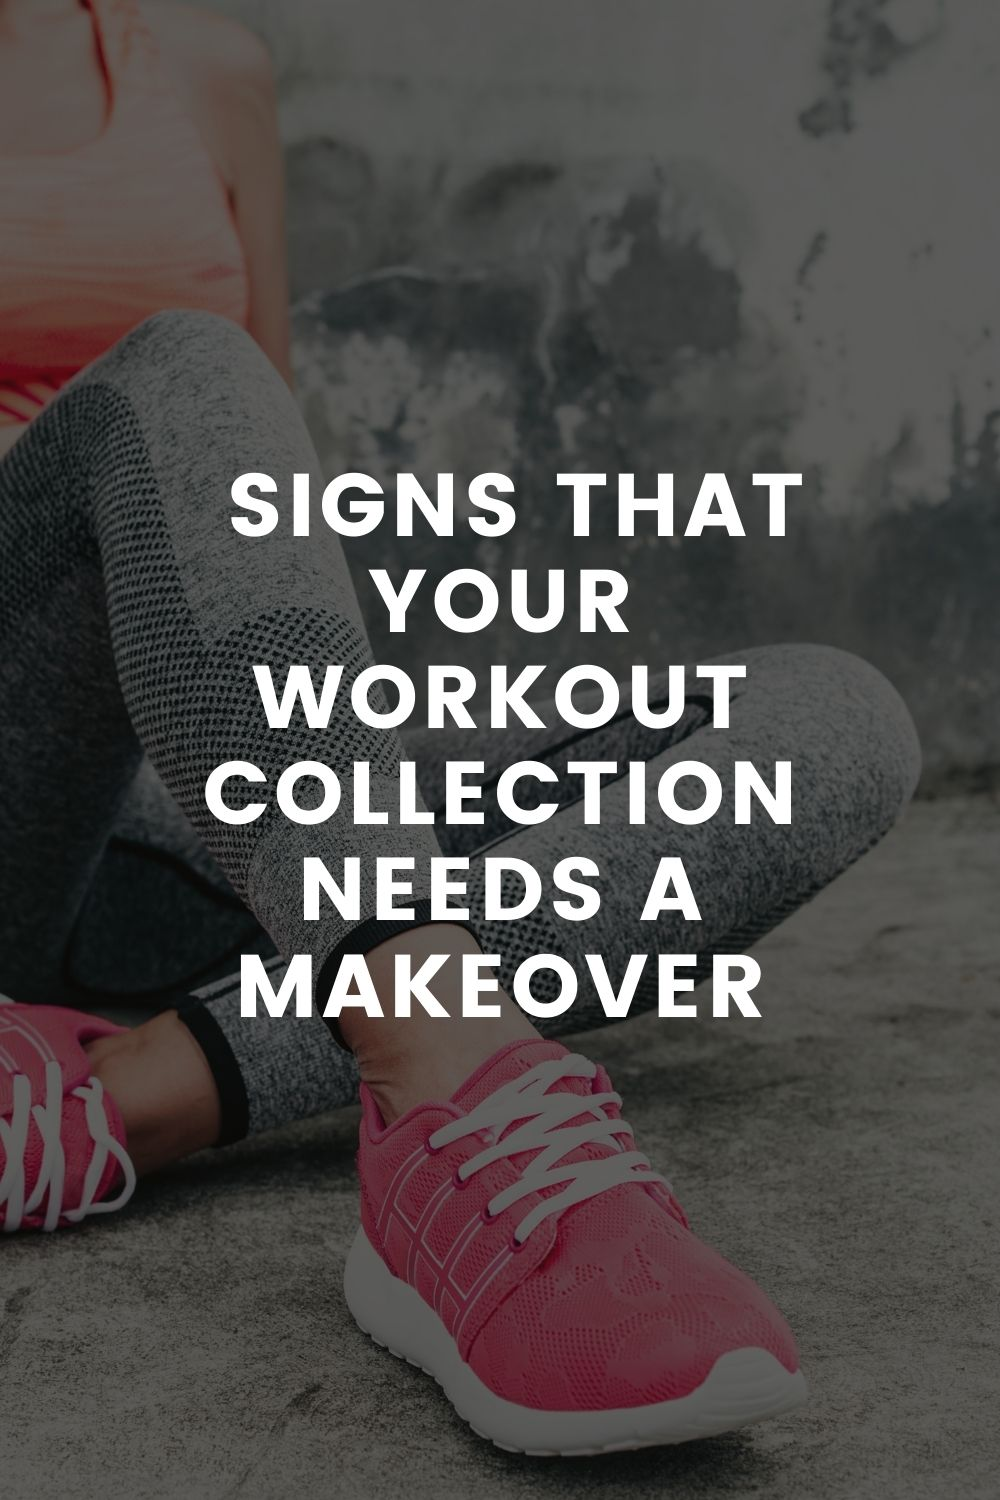 Signs That Your Workout Collection Needs A Makeover